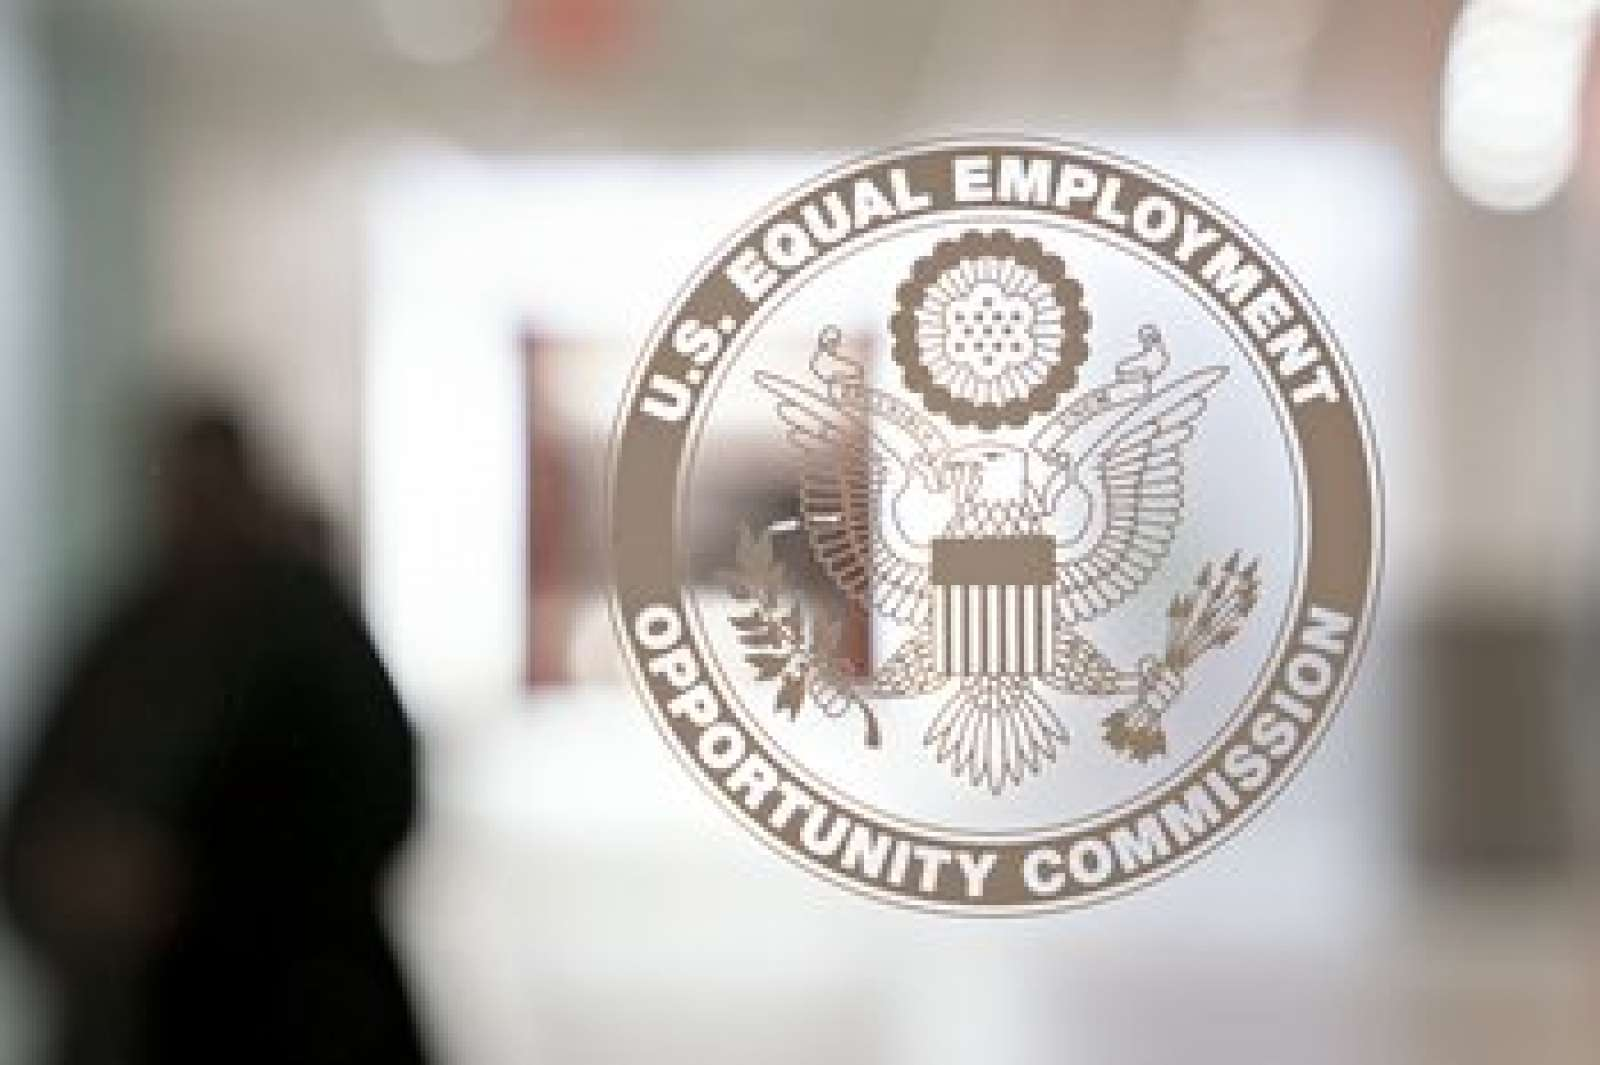 COVID-19 LJSL ALERT: EEOC STATES EMPLOYERS MAY NOW SCREEN EMPLOYEES FOR COVID-19